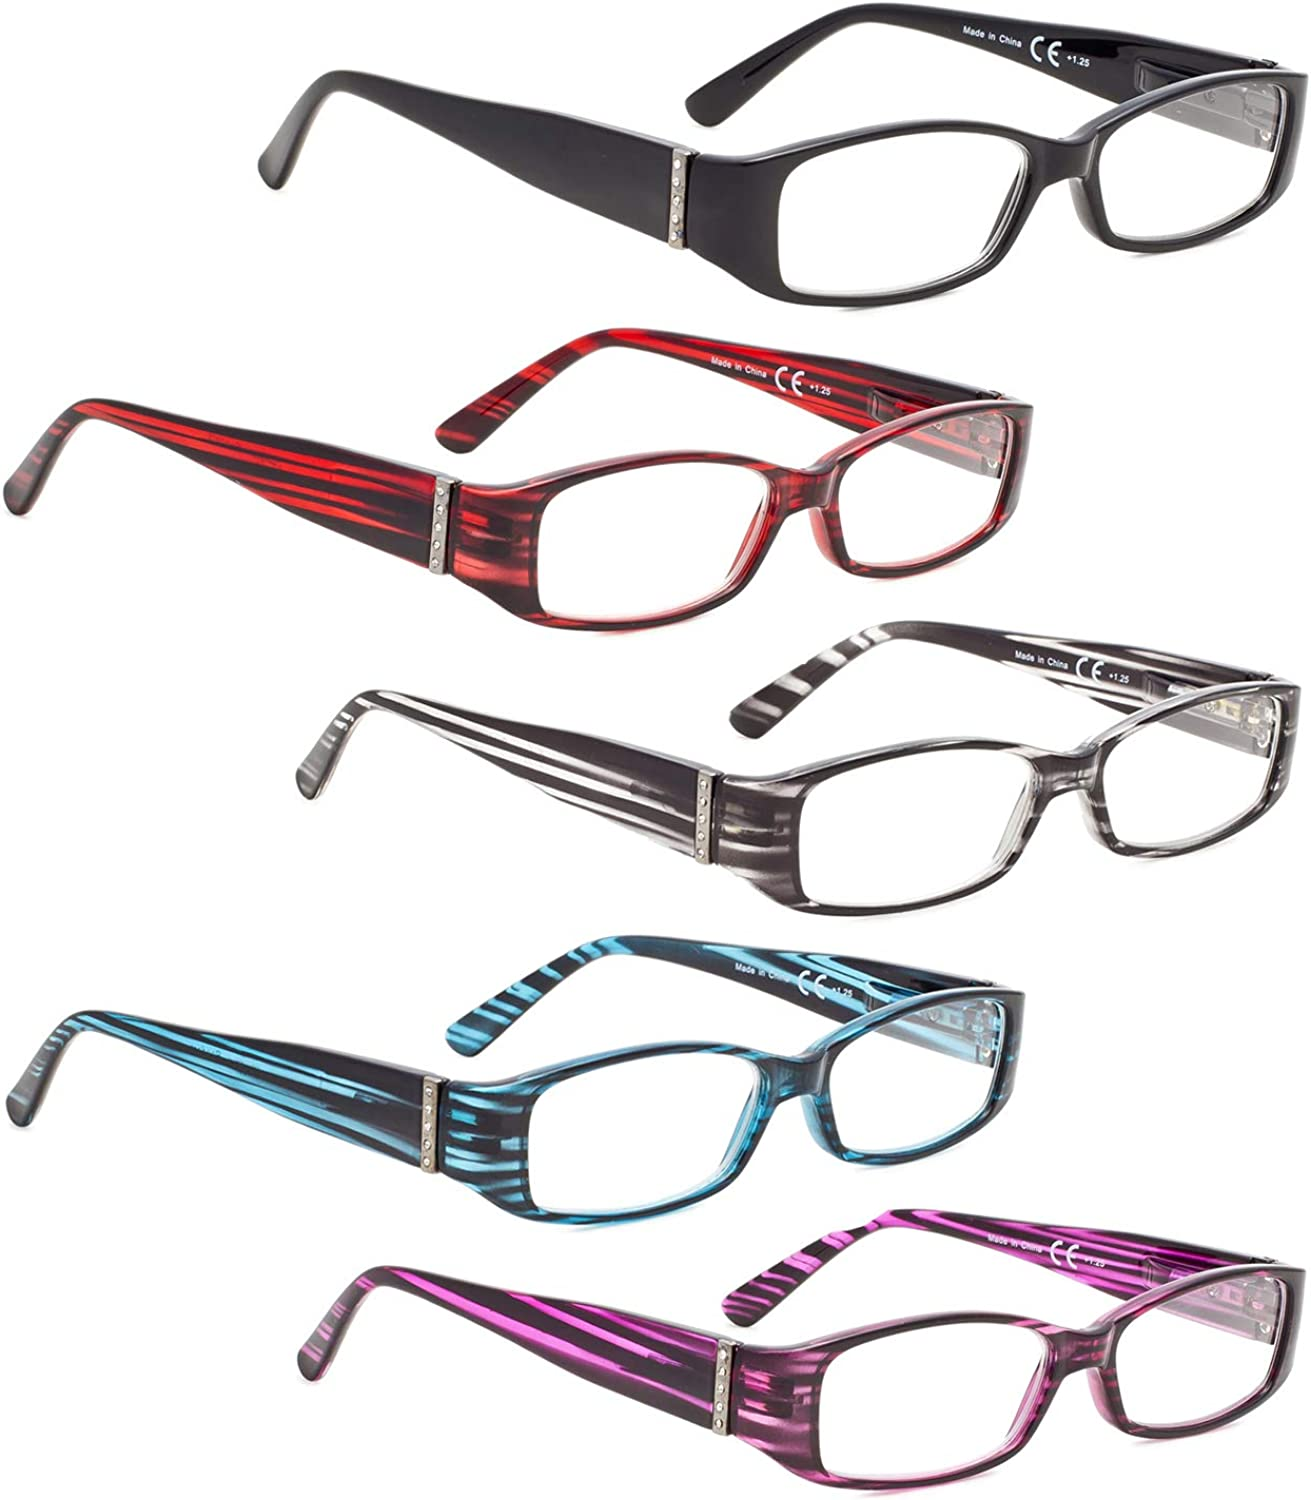 READING GLASSES Super beauty product restock quality top! 5 OFFicial pack Arms with Genuine Austrian Crystals Reade